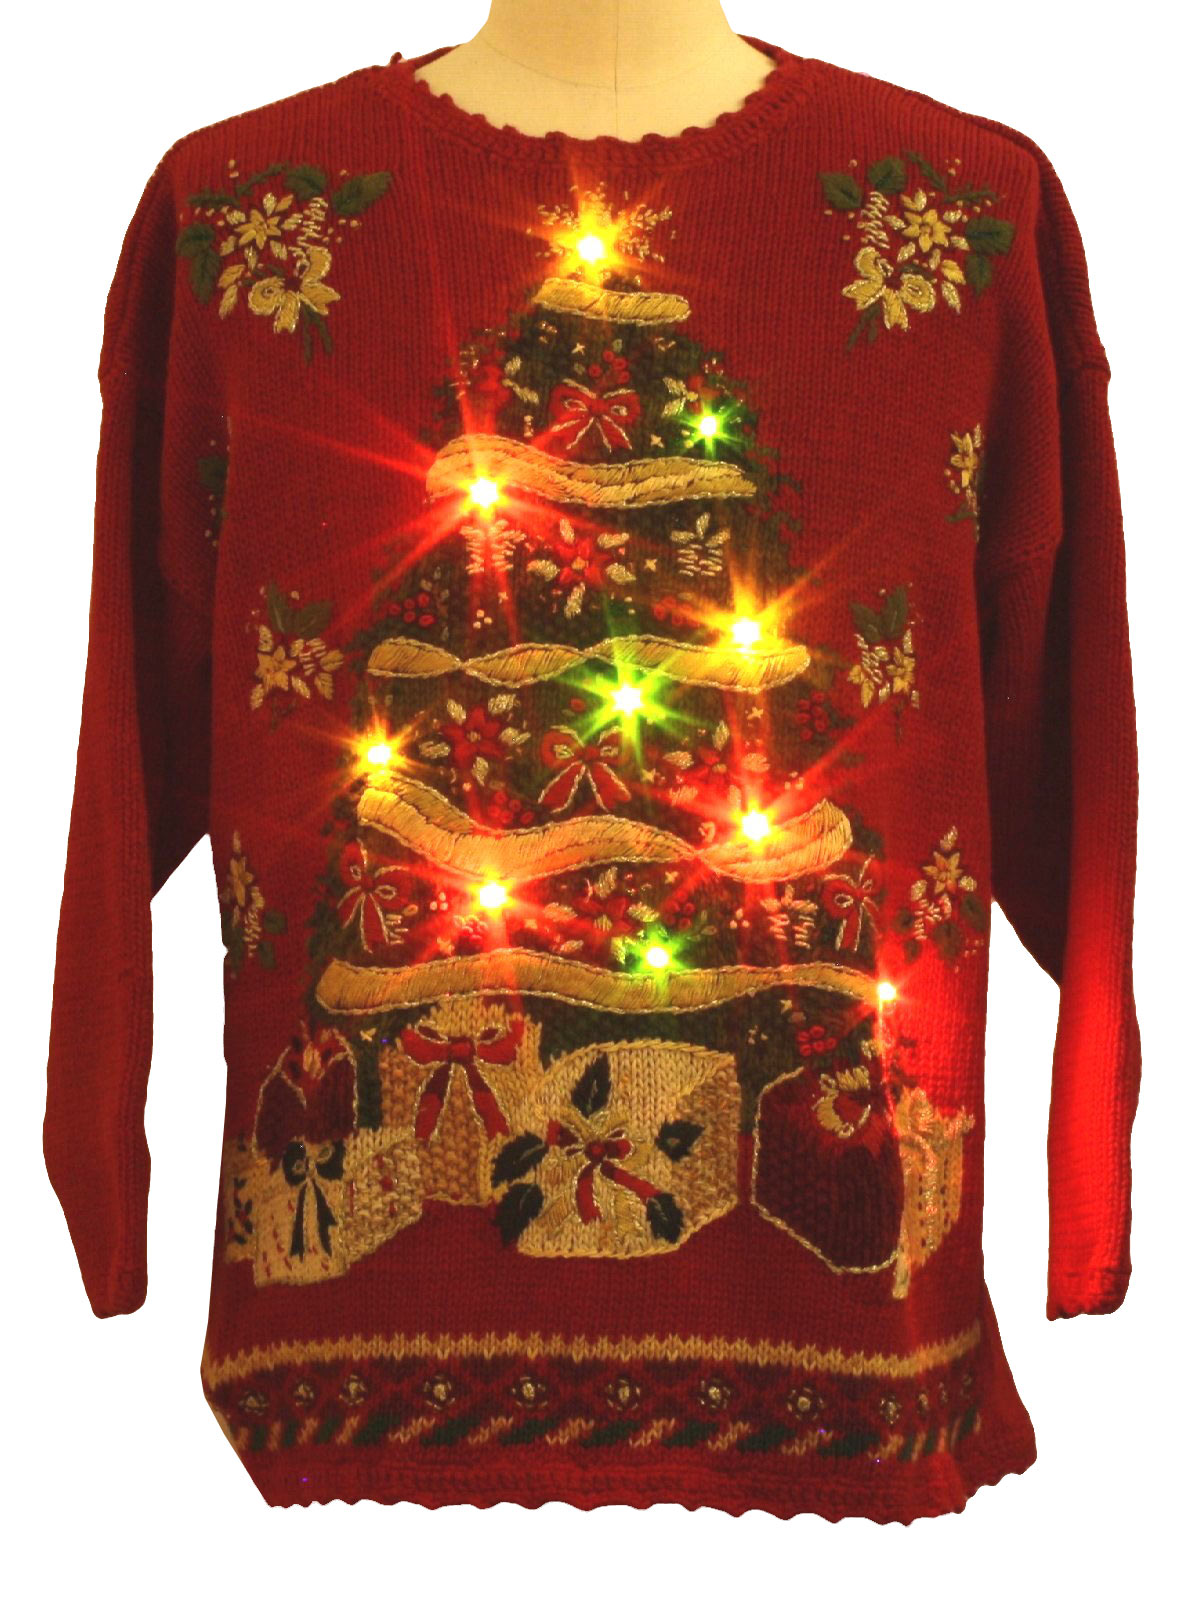 lightup ugly christmas sweater tiara international unisex red background cotton ramie blend longsleeve pullover ugly light up 10 led multicolored